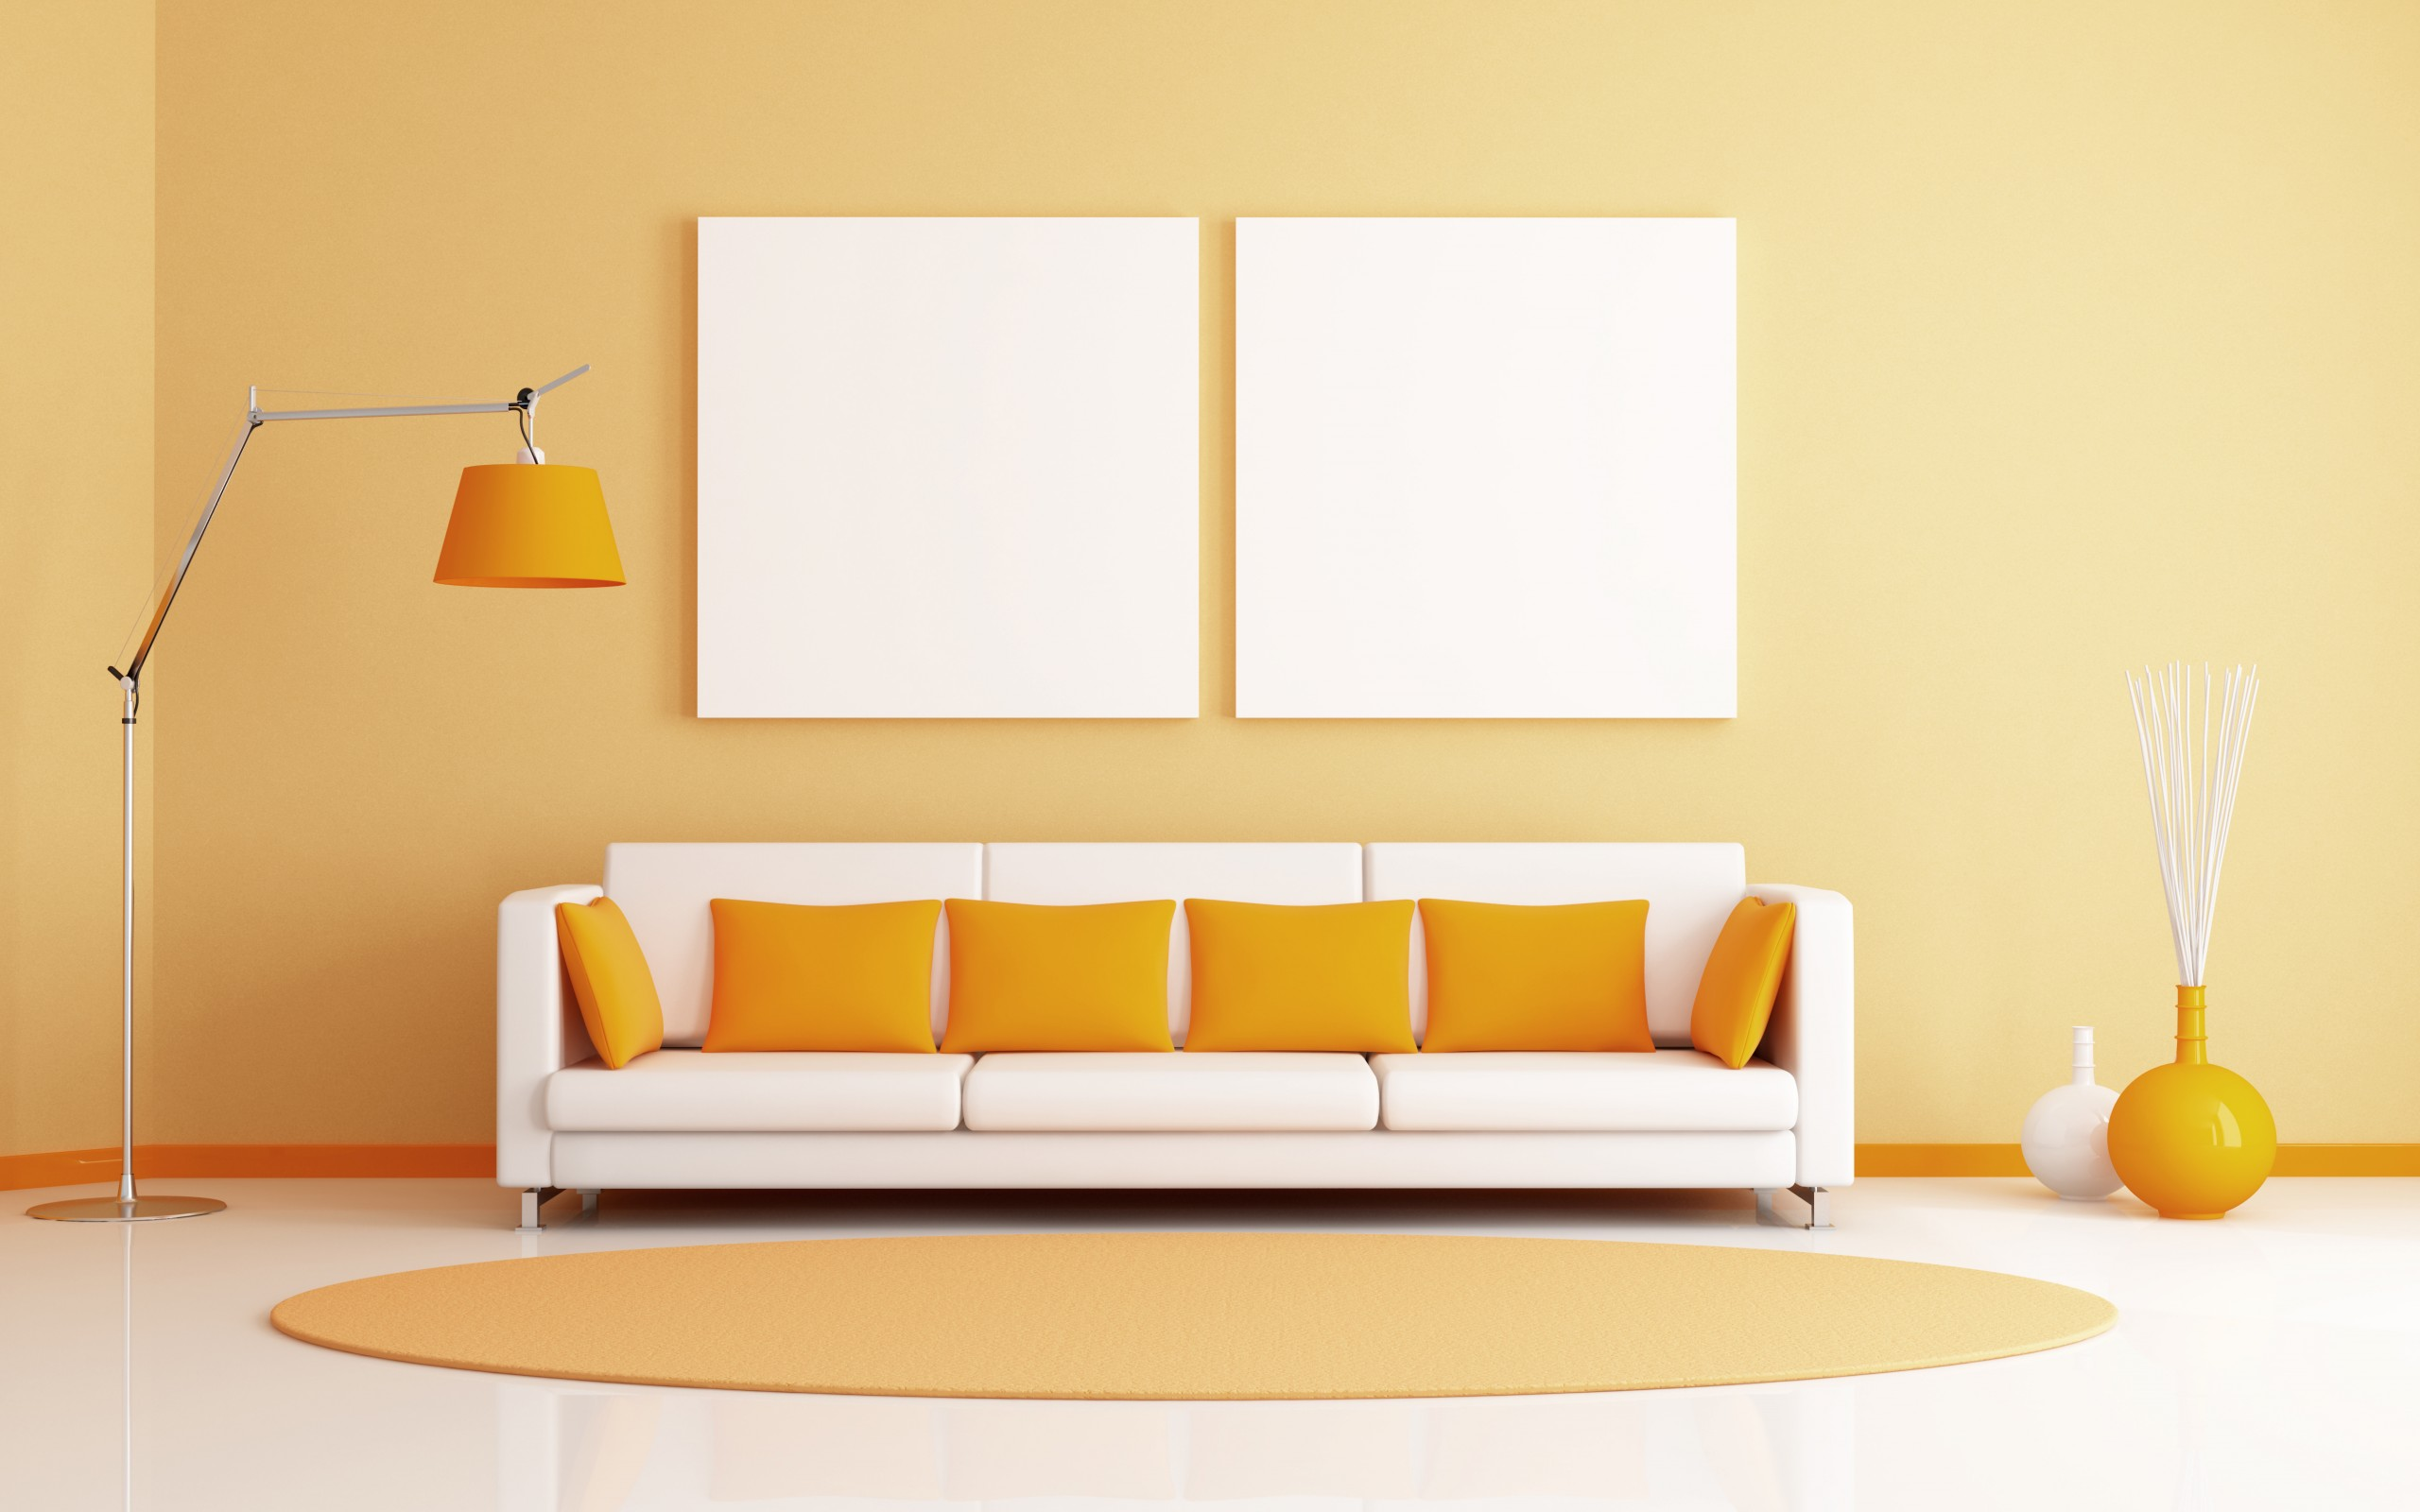 orange room sofa and pillows wallpapers